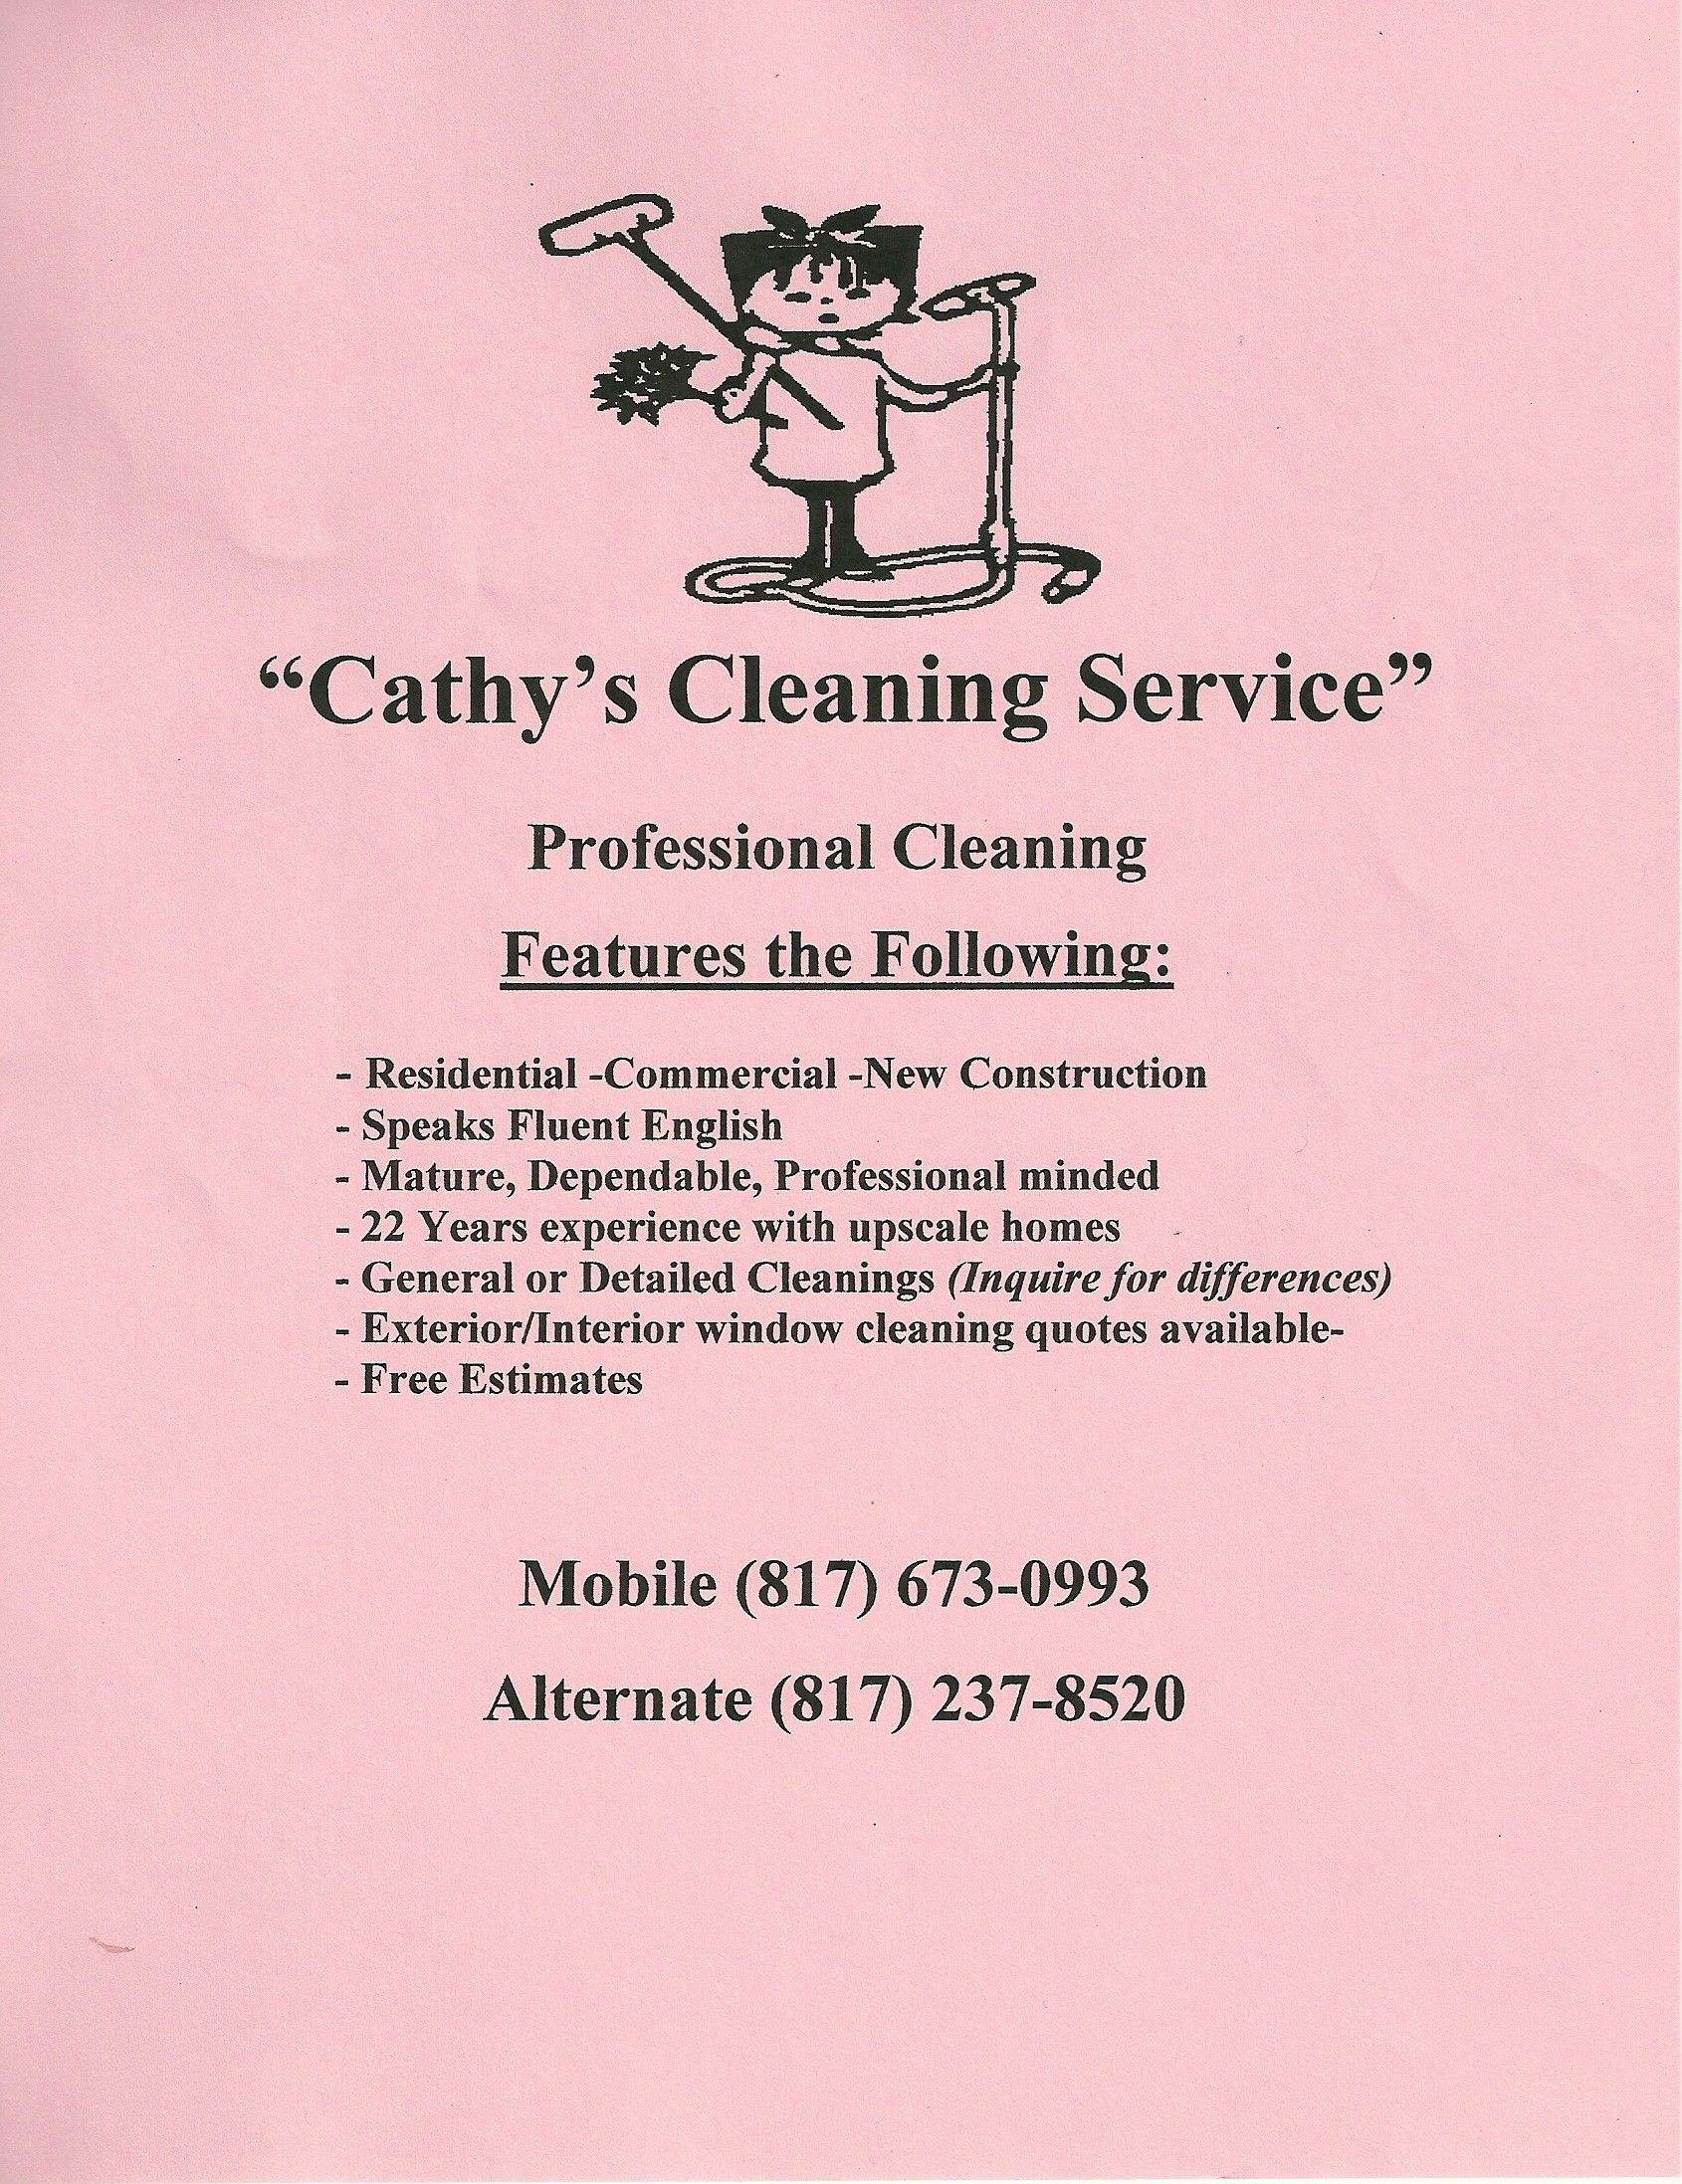 House Cleaning Services | Creative Marketing Materials for a House ...